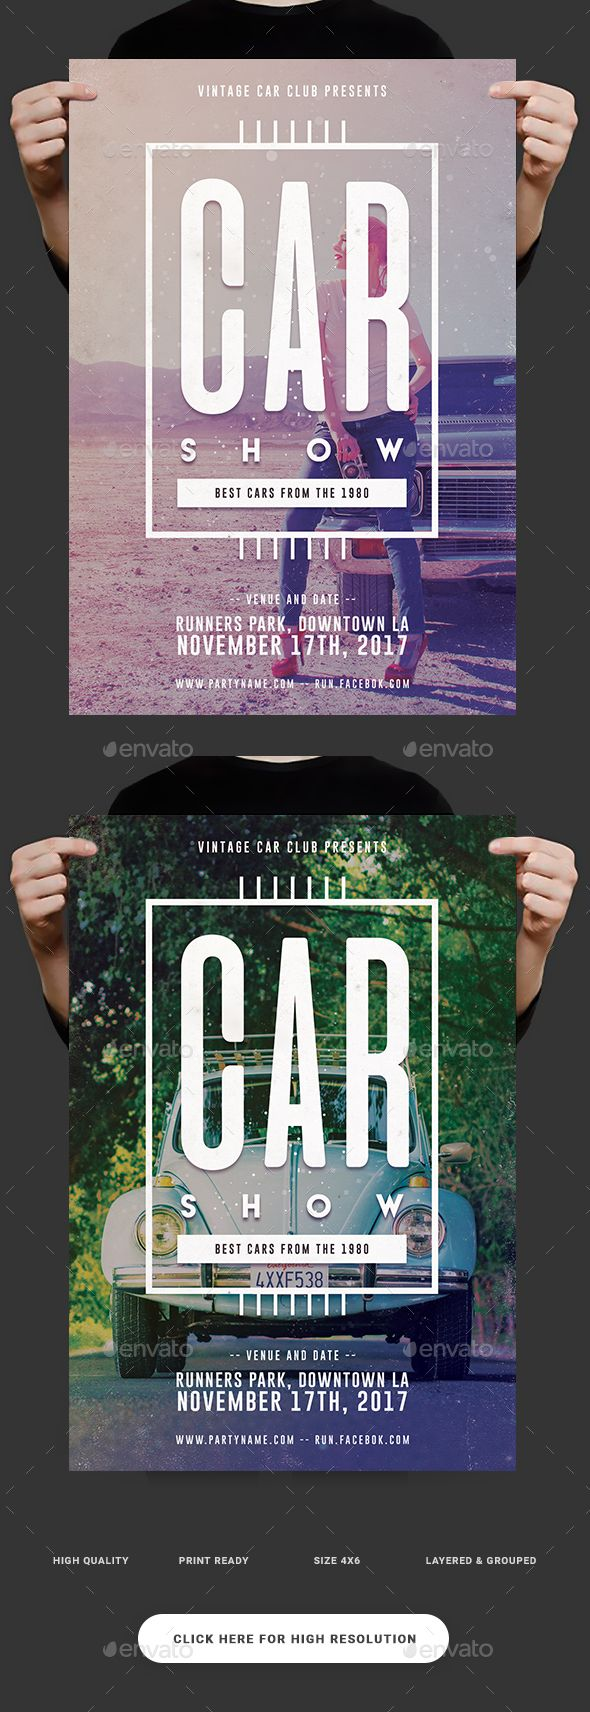 Classic Car Show Flyer | Psd templates, Template and Cars